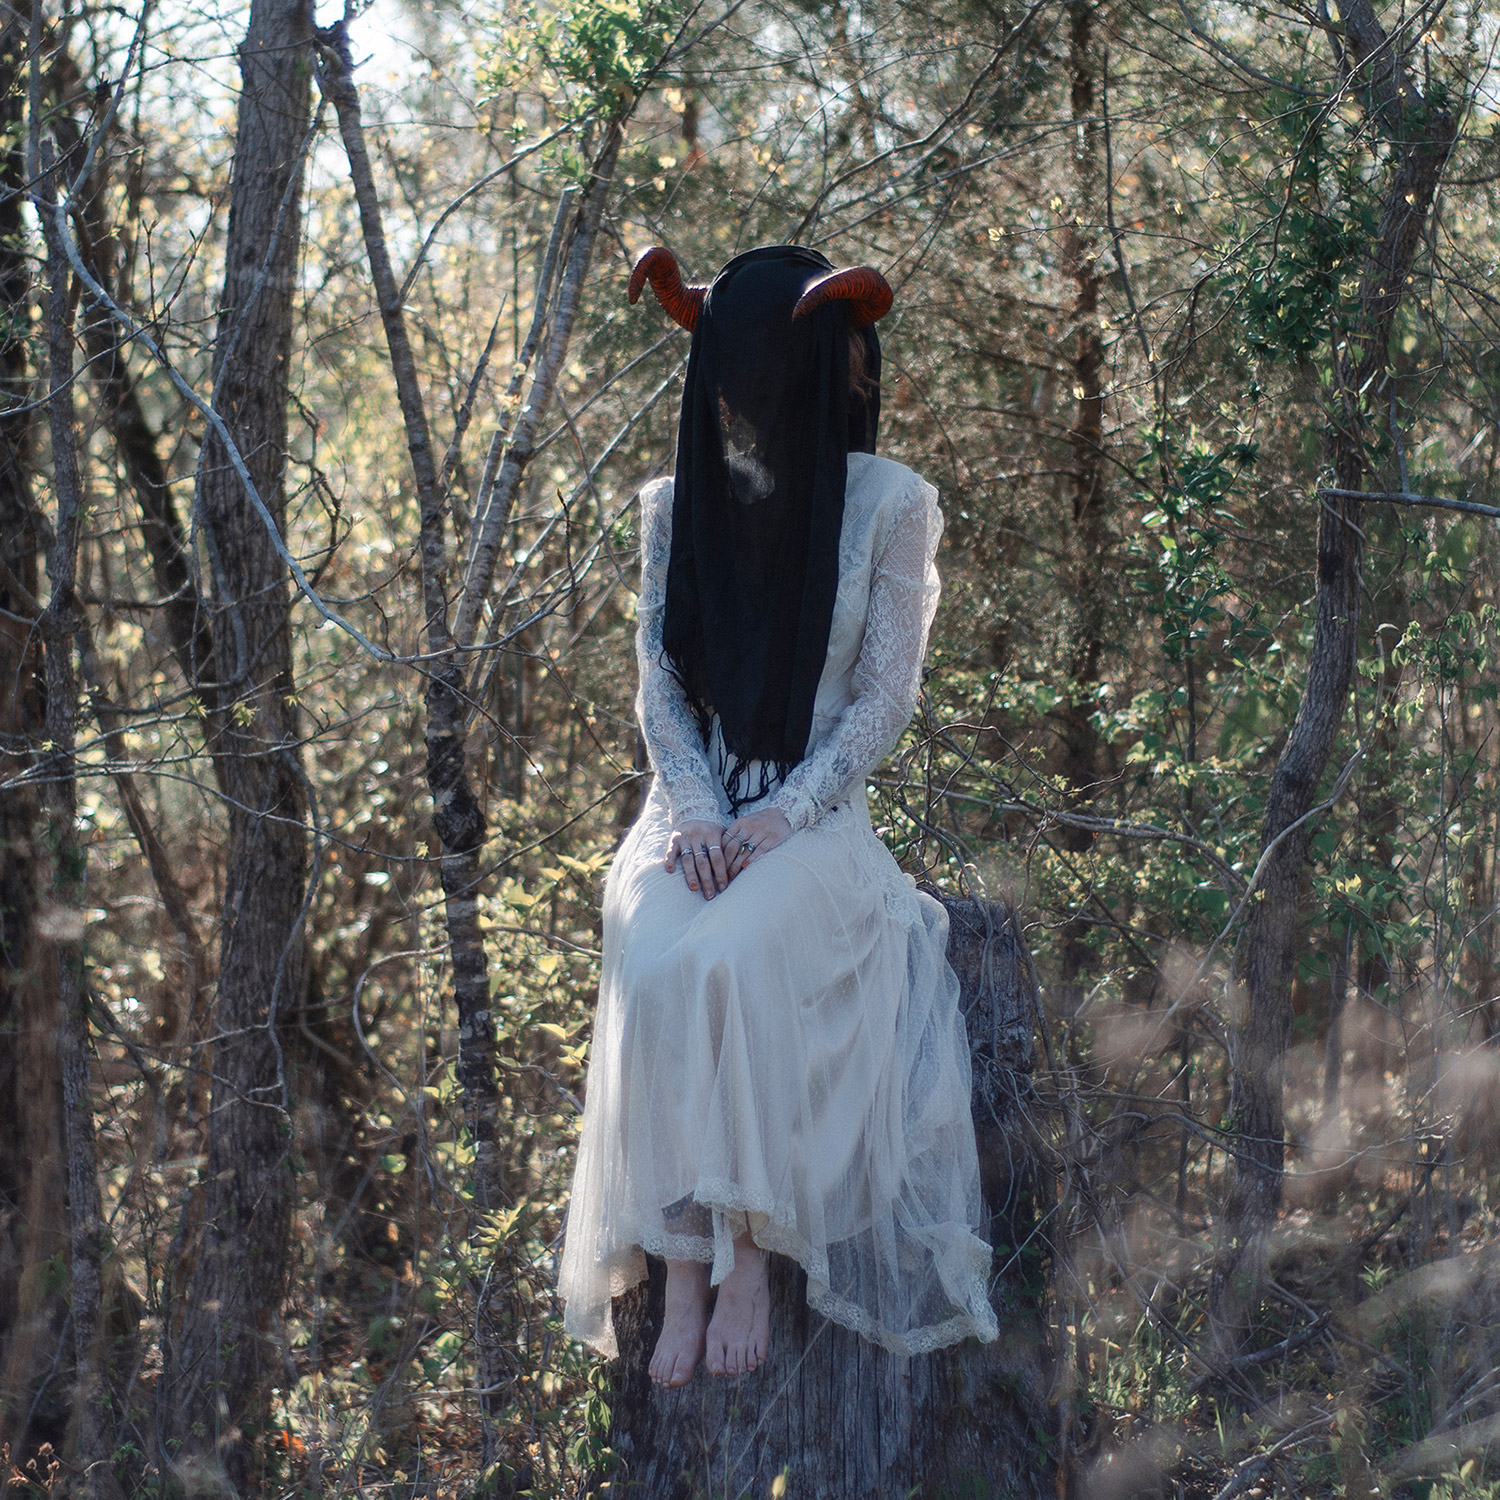 Christopher McKenney - horned figure in forest